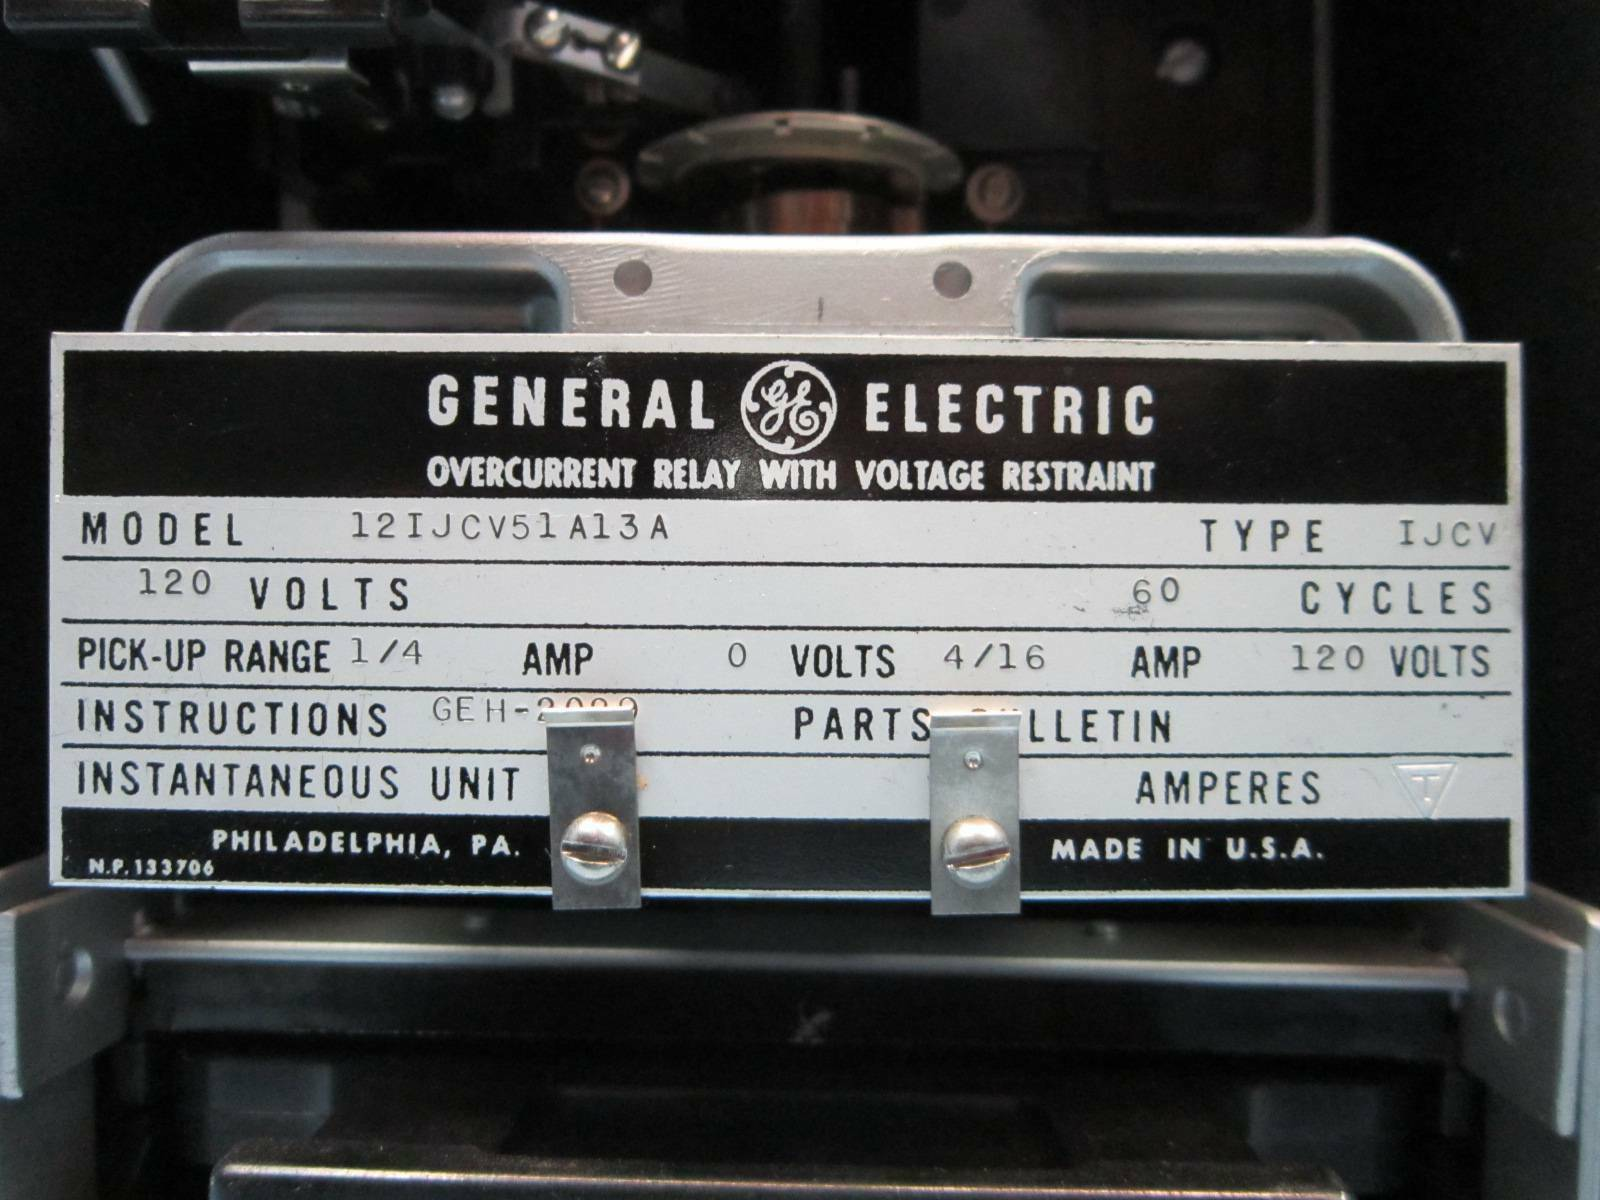 Additions to my XM-5000Li   V is for Voltage electric